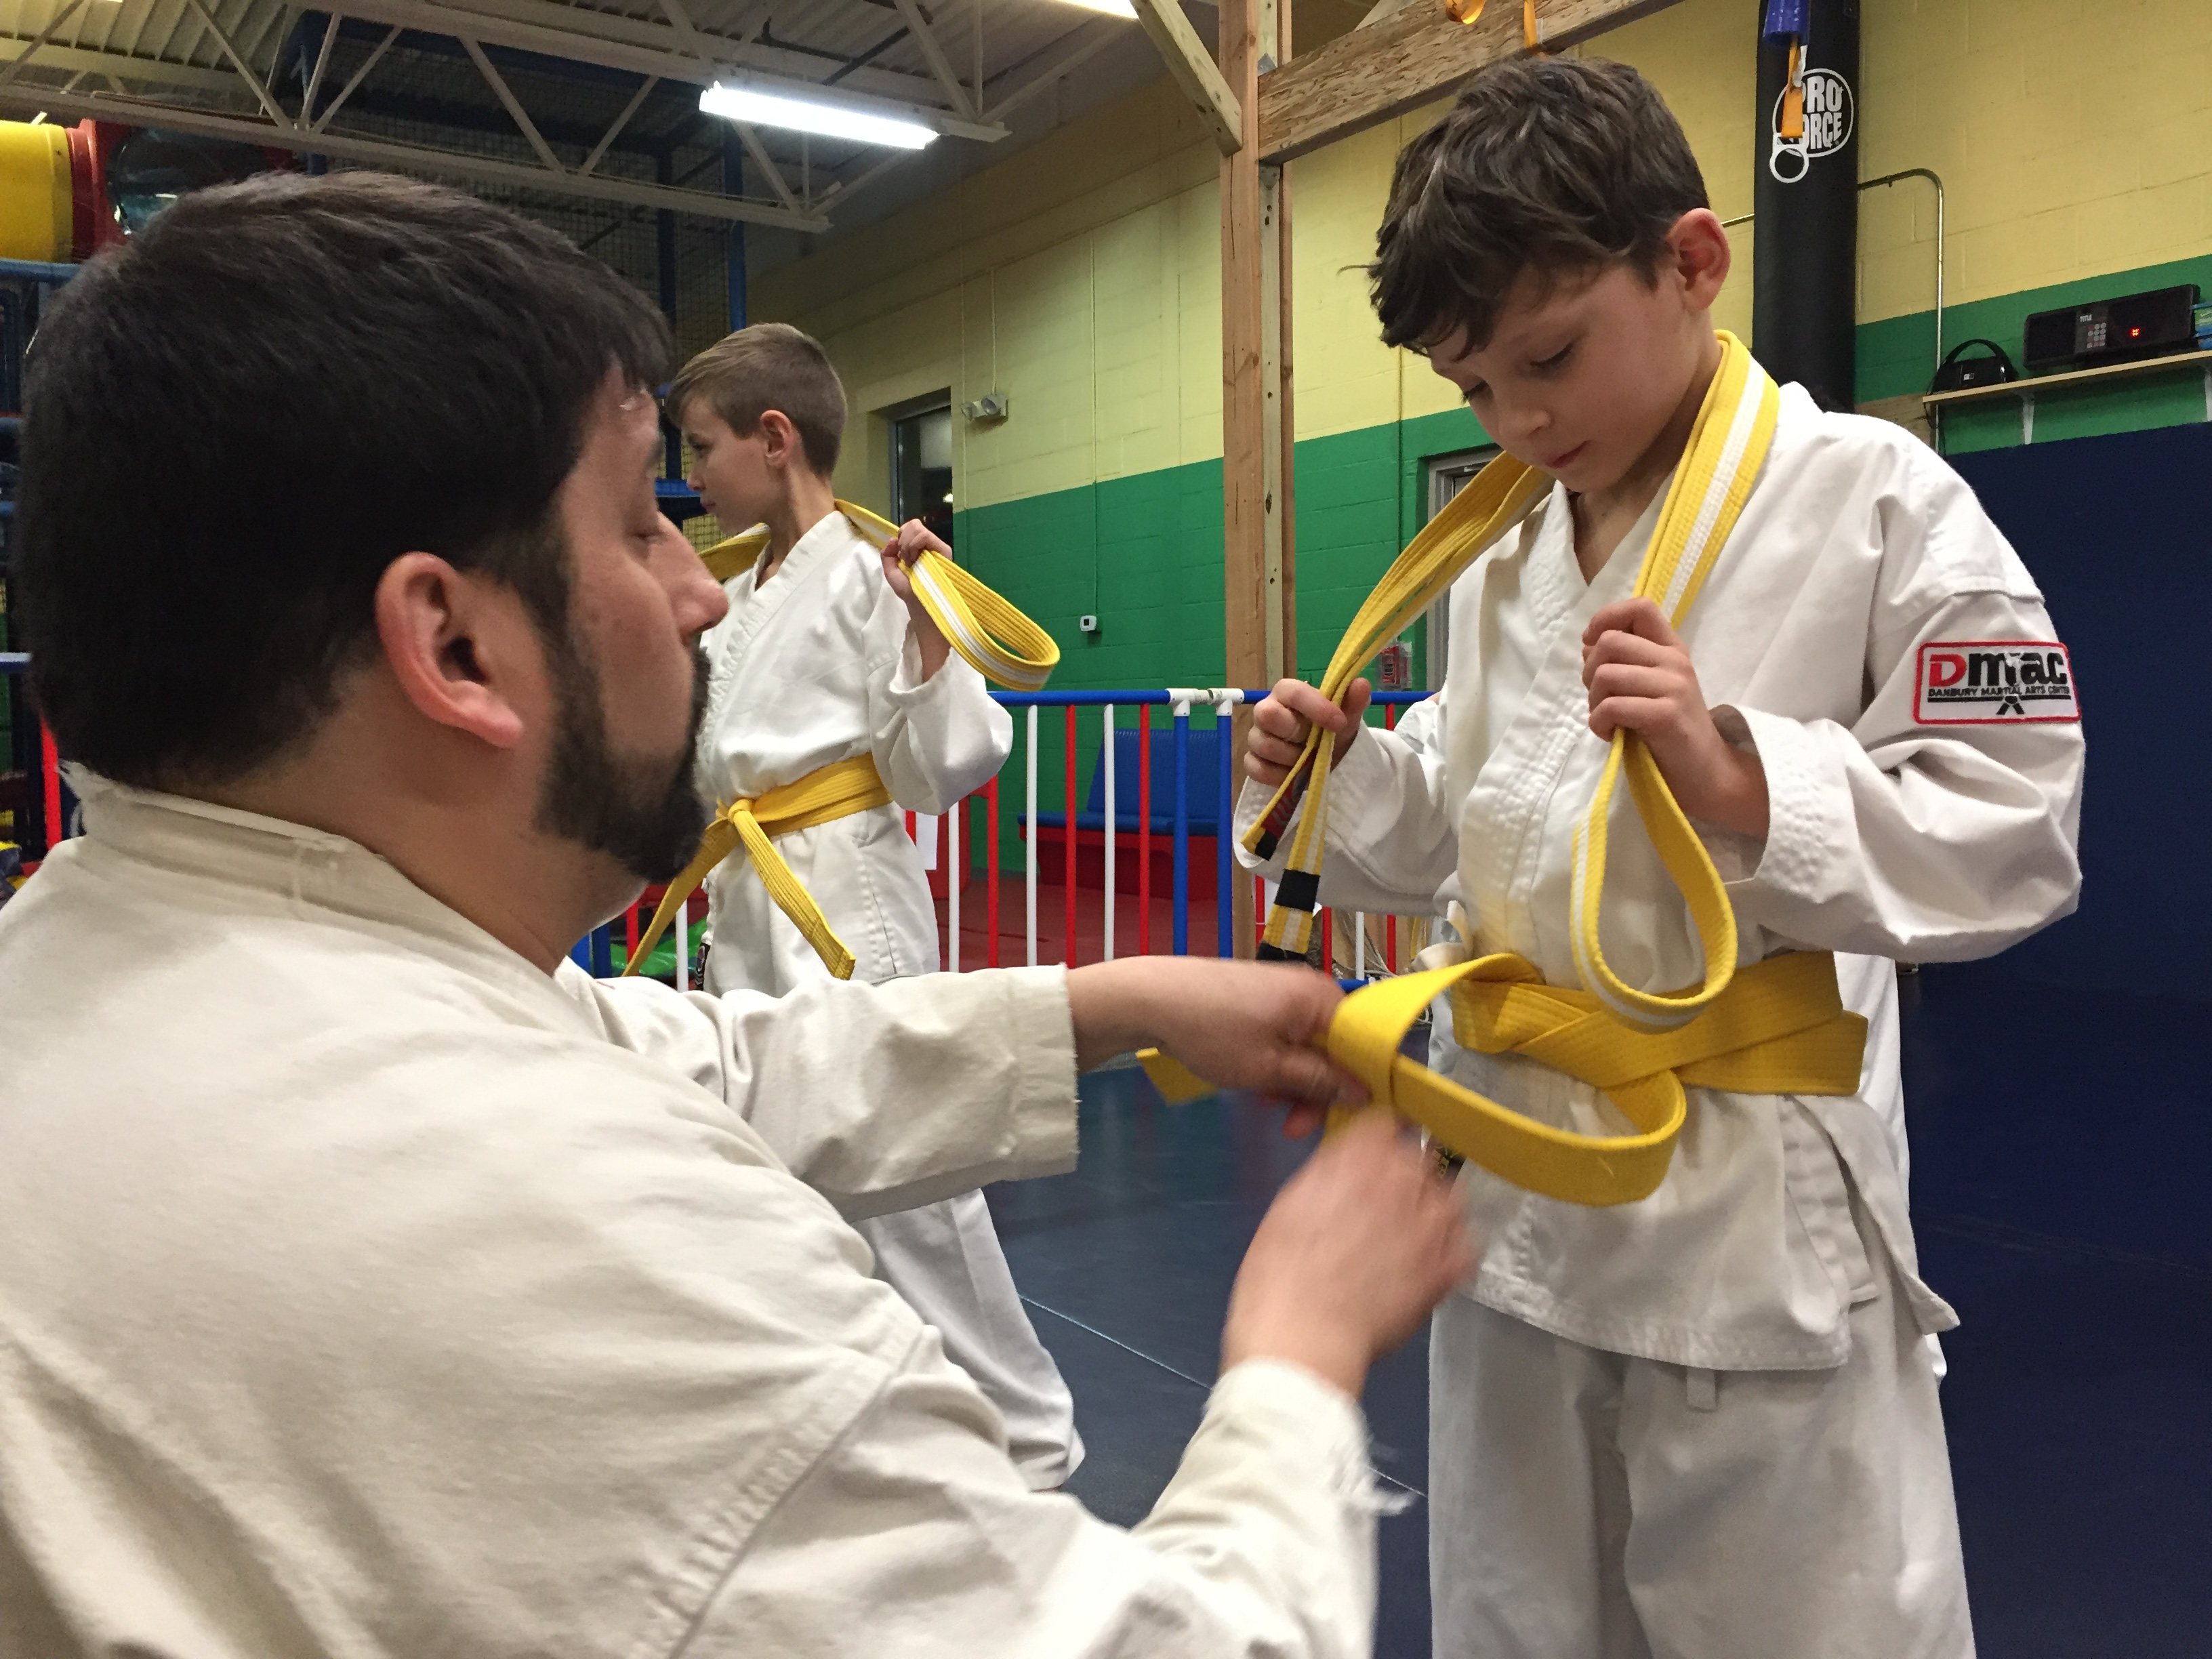 Classes for children at Danbury Martial Arts Center